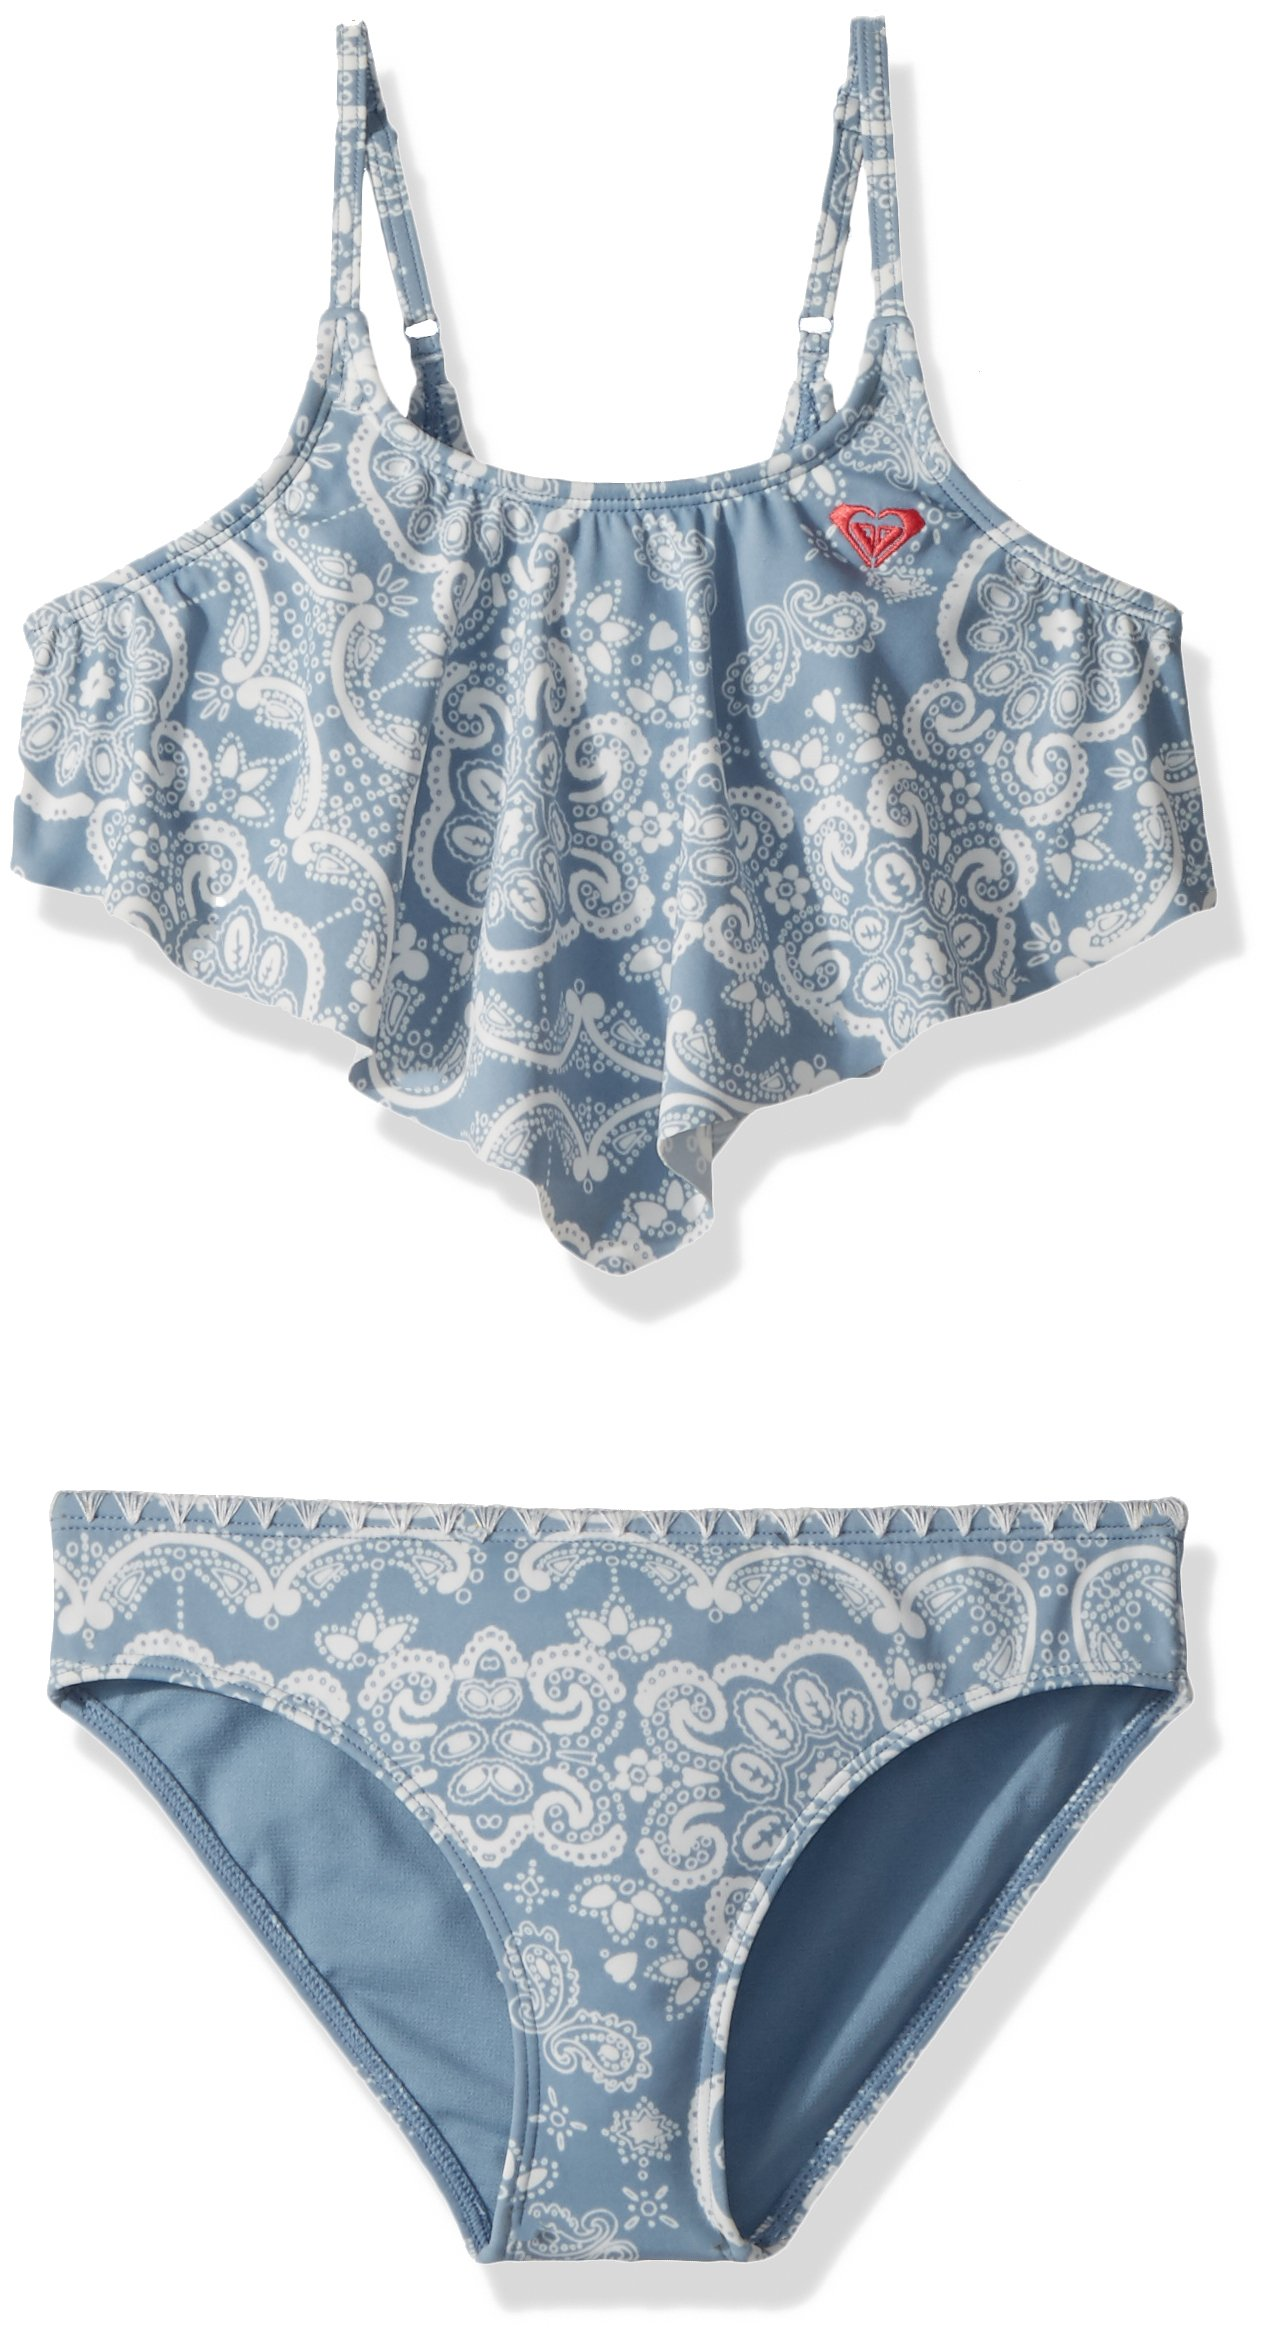 Roxy Big Girls' Nautical Summer Bandana Swimsuit Set, Blue Shadow Bandana Kids, 8